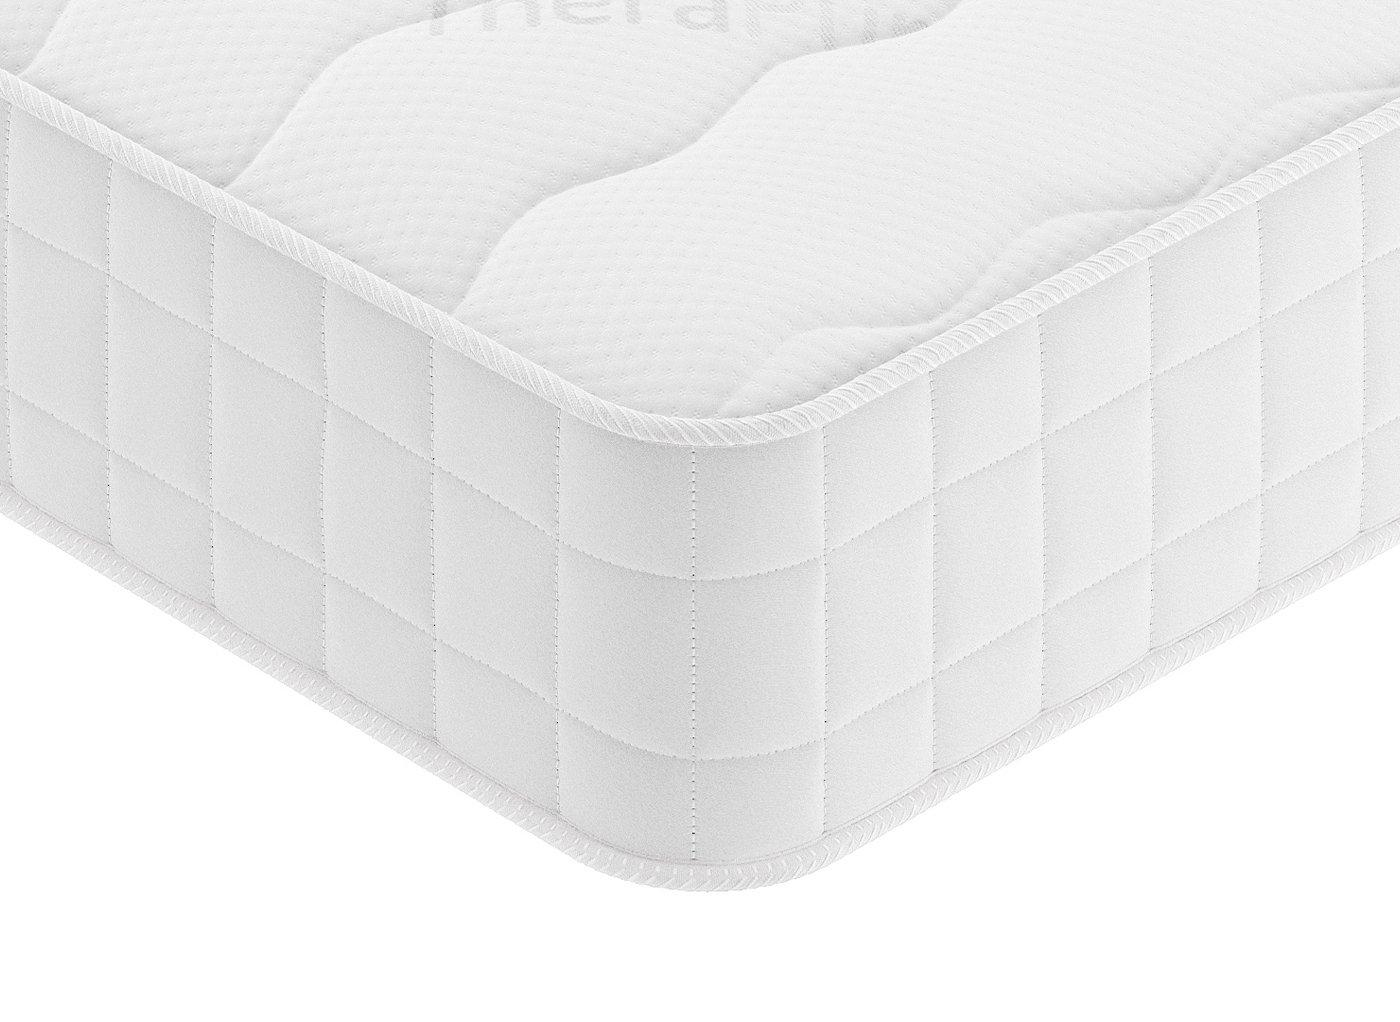 Therapur actigel harmonic 800 4'0 mattress v2 4'0 small double